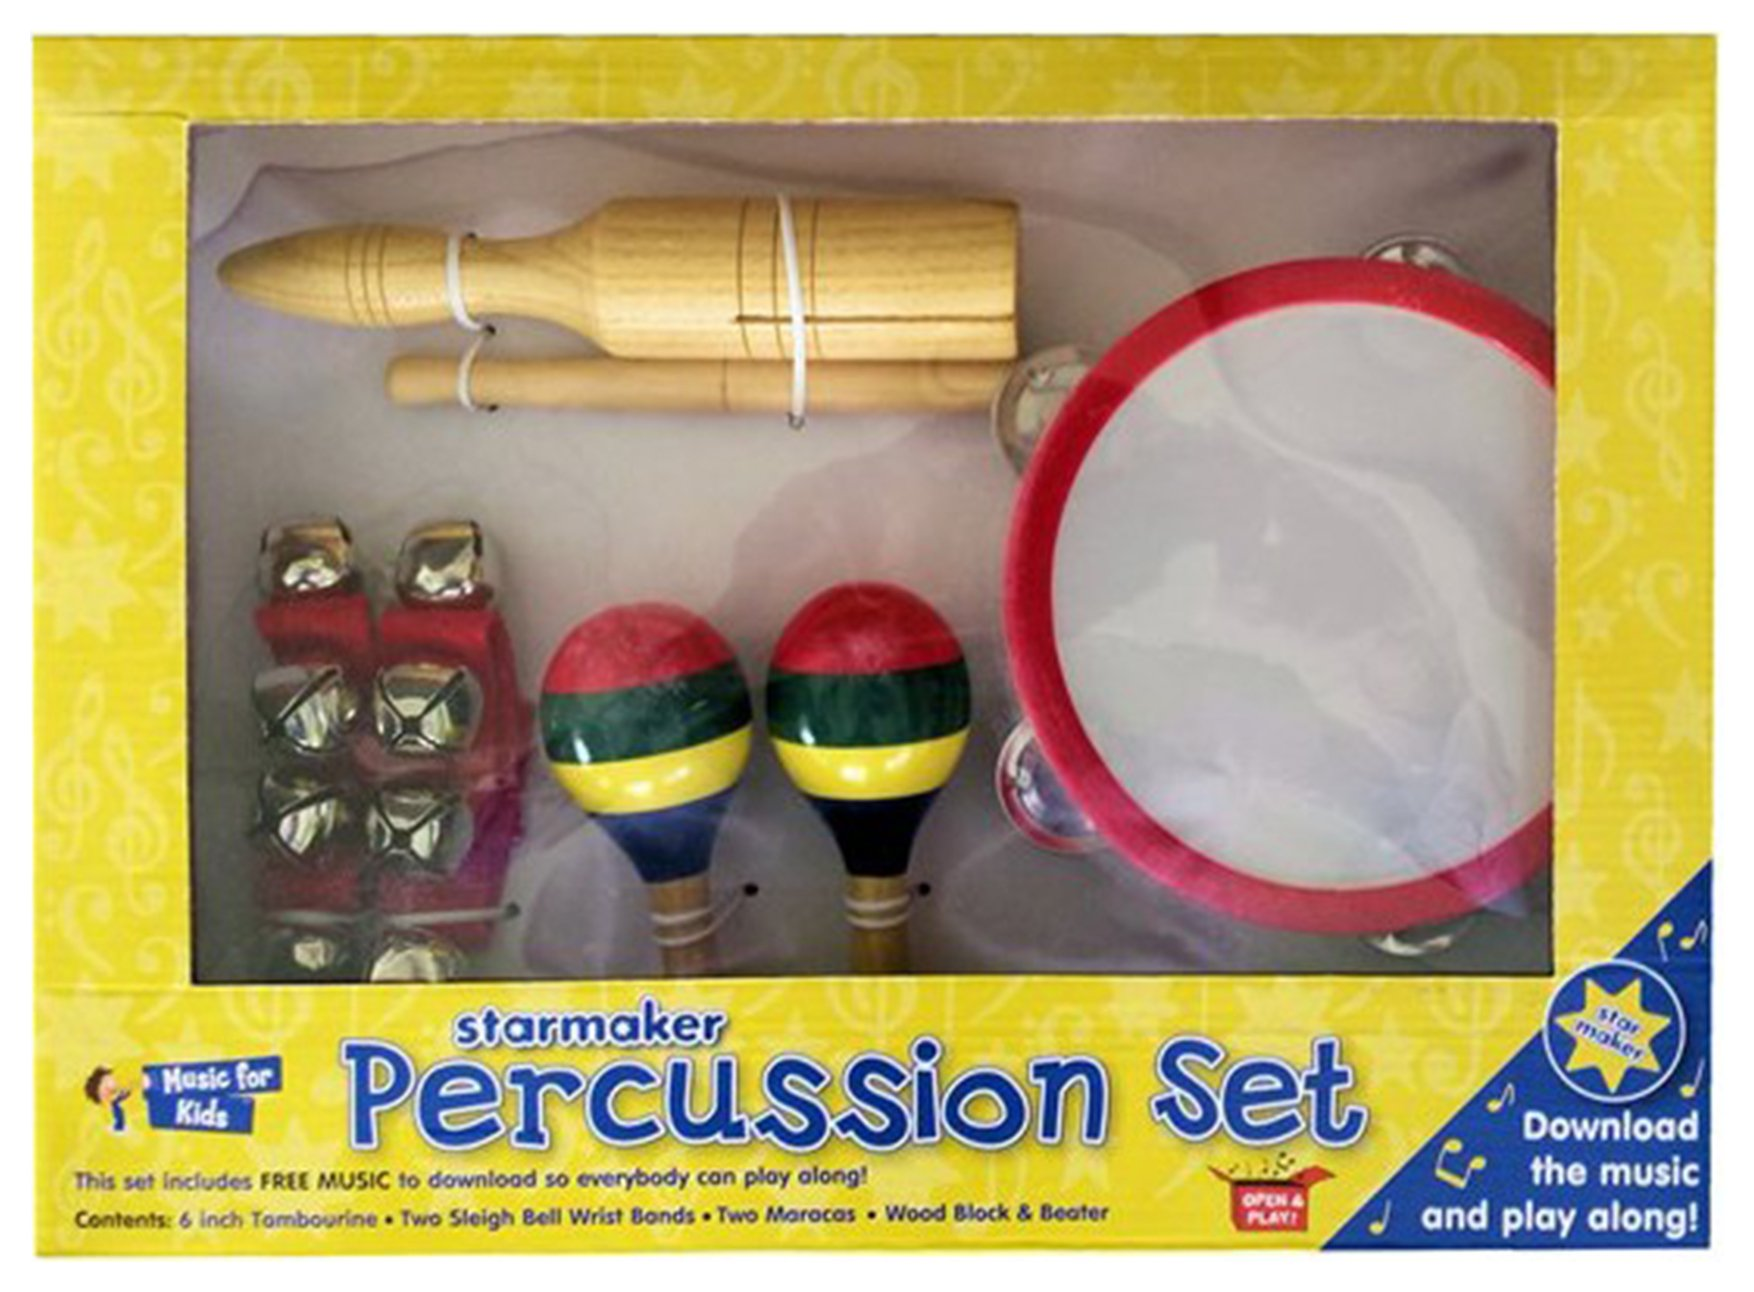 Image of Starmaker Percussion Set